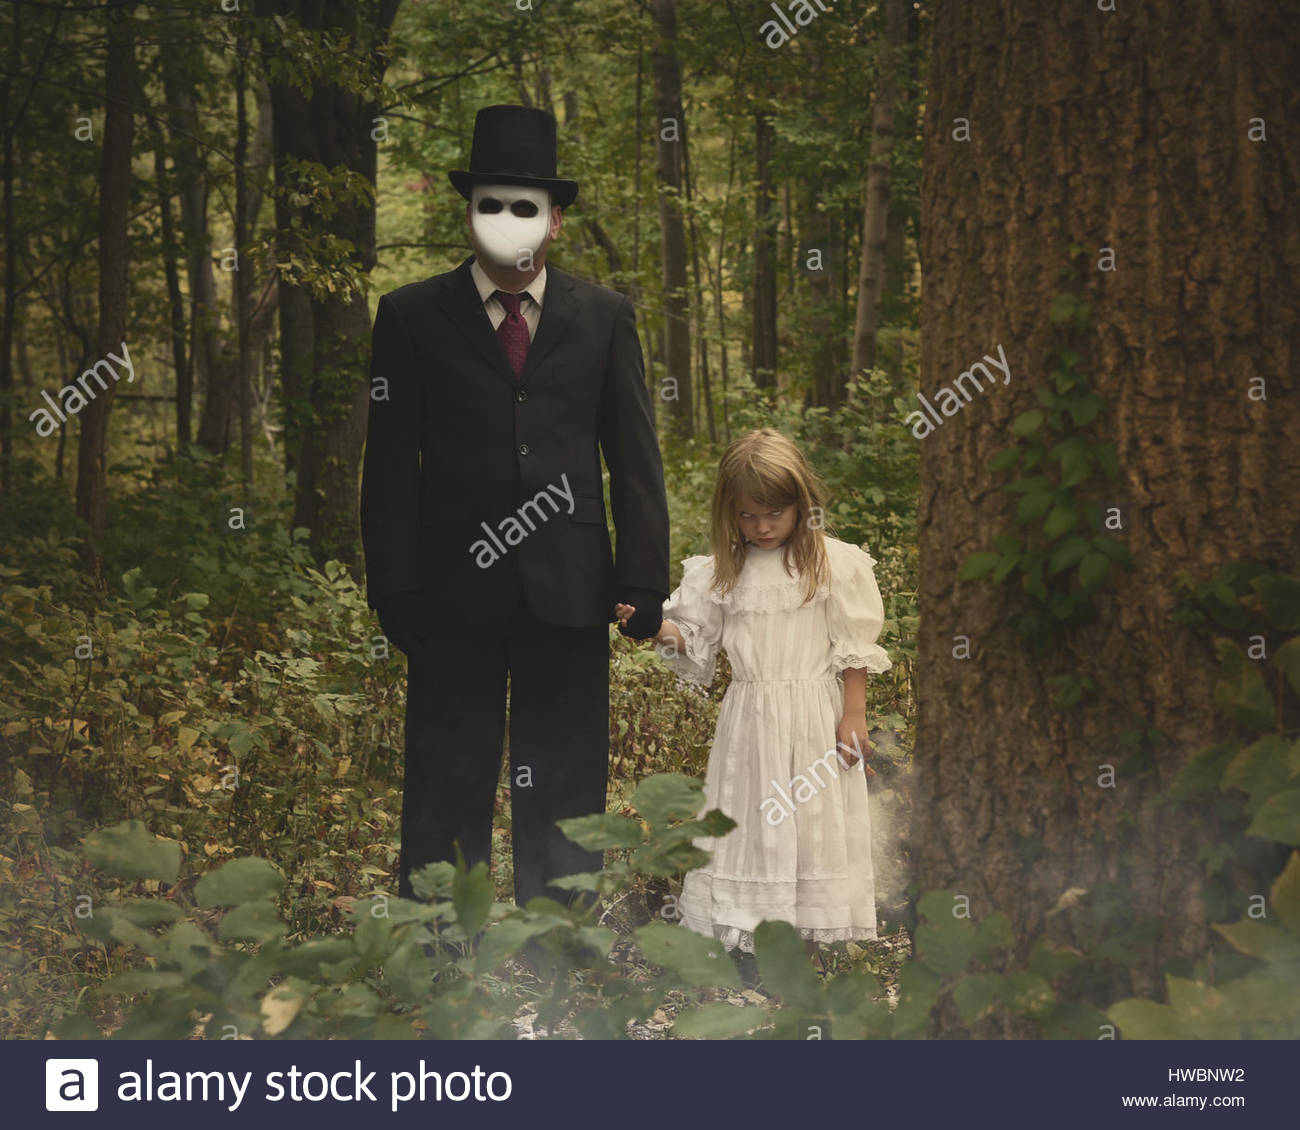 A scary man in a white mask and suit is standing in the dark woods with a child who is possessed with evil for a - Stock Image